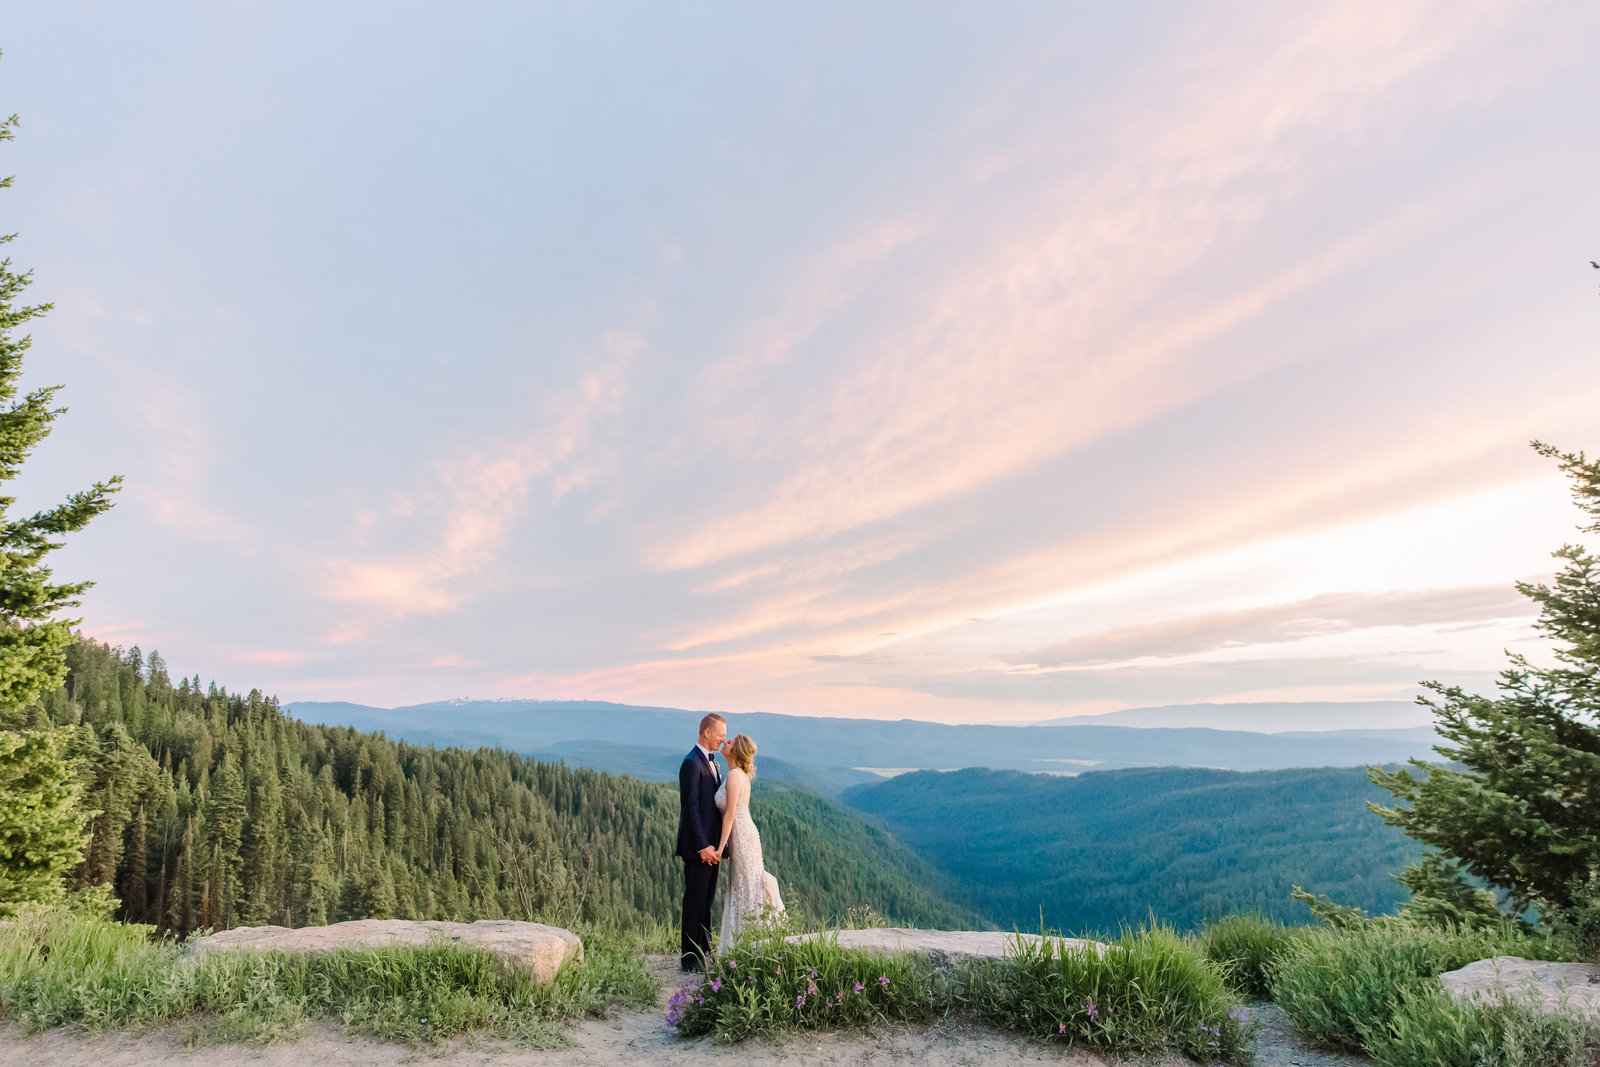 Sunset husband and wife pictures in the Idaho mountains.